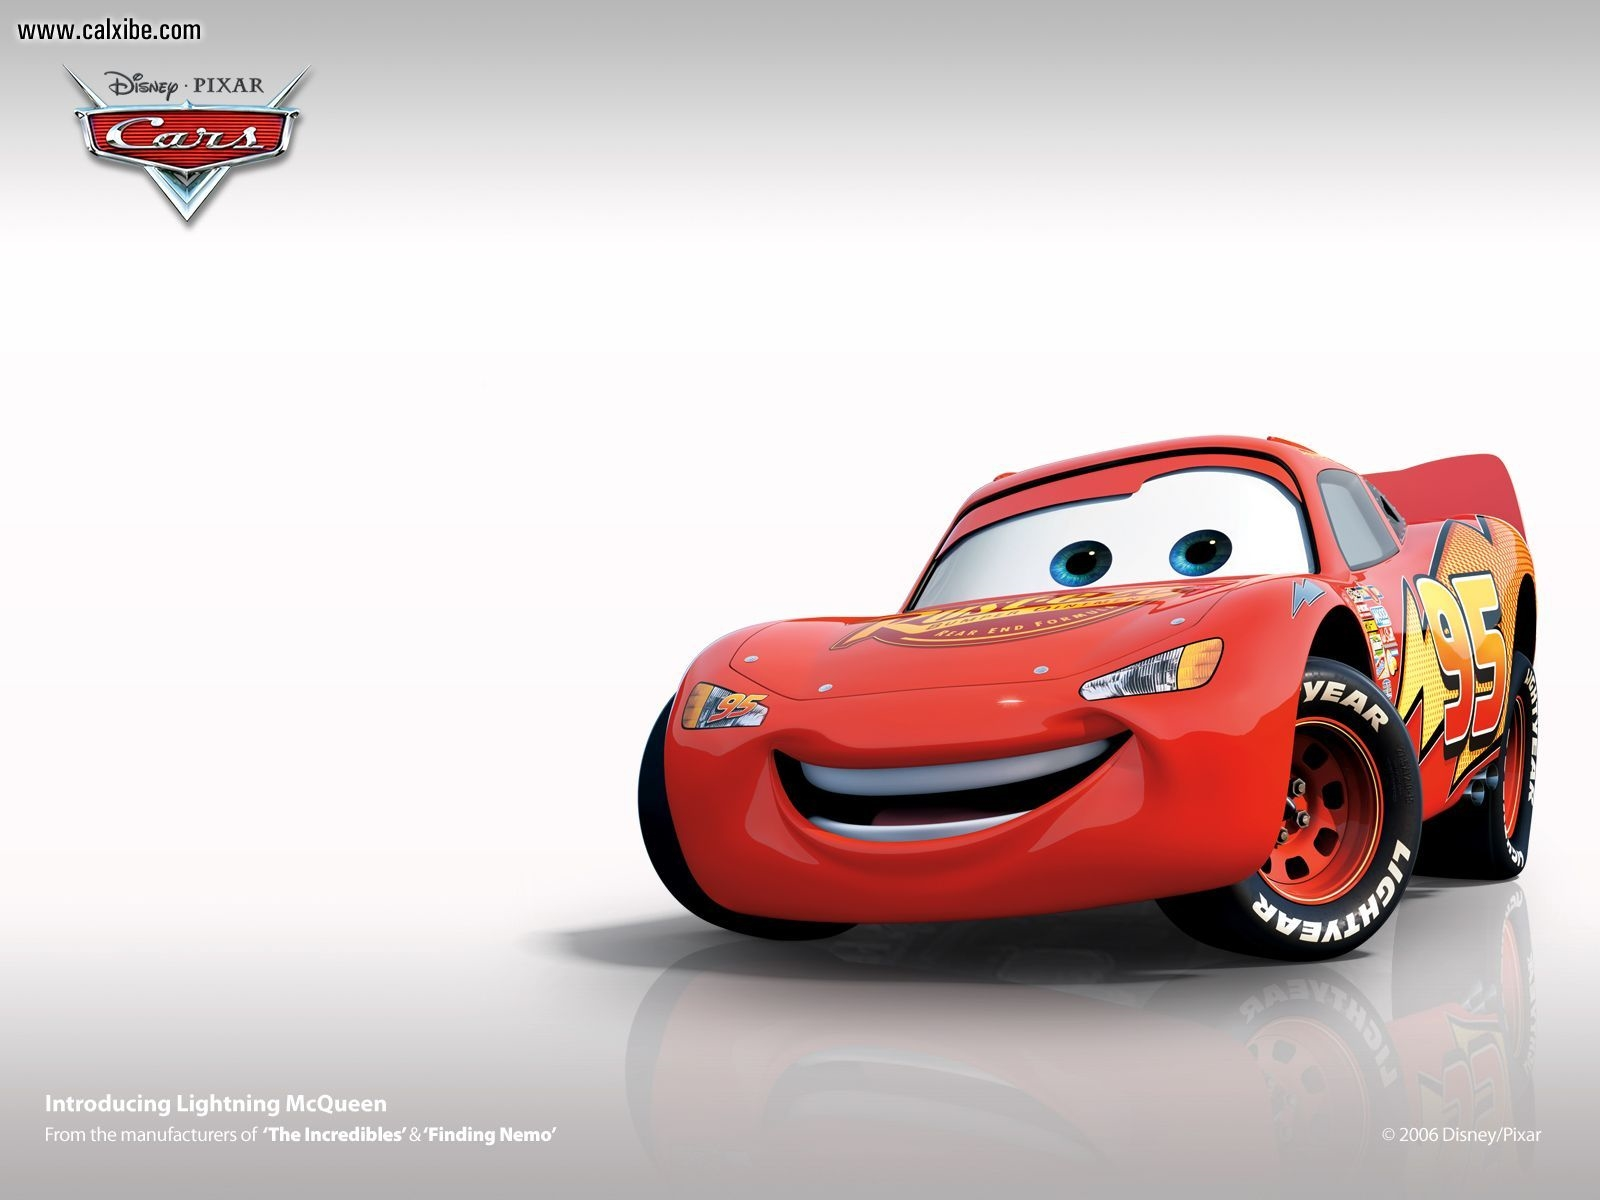 mcqueen 600x1200 disney cars desktop wallpaper hd